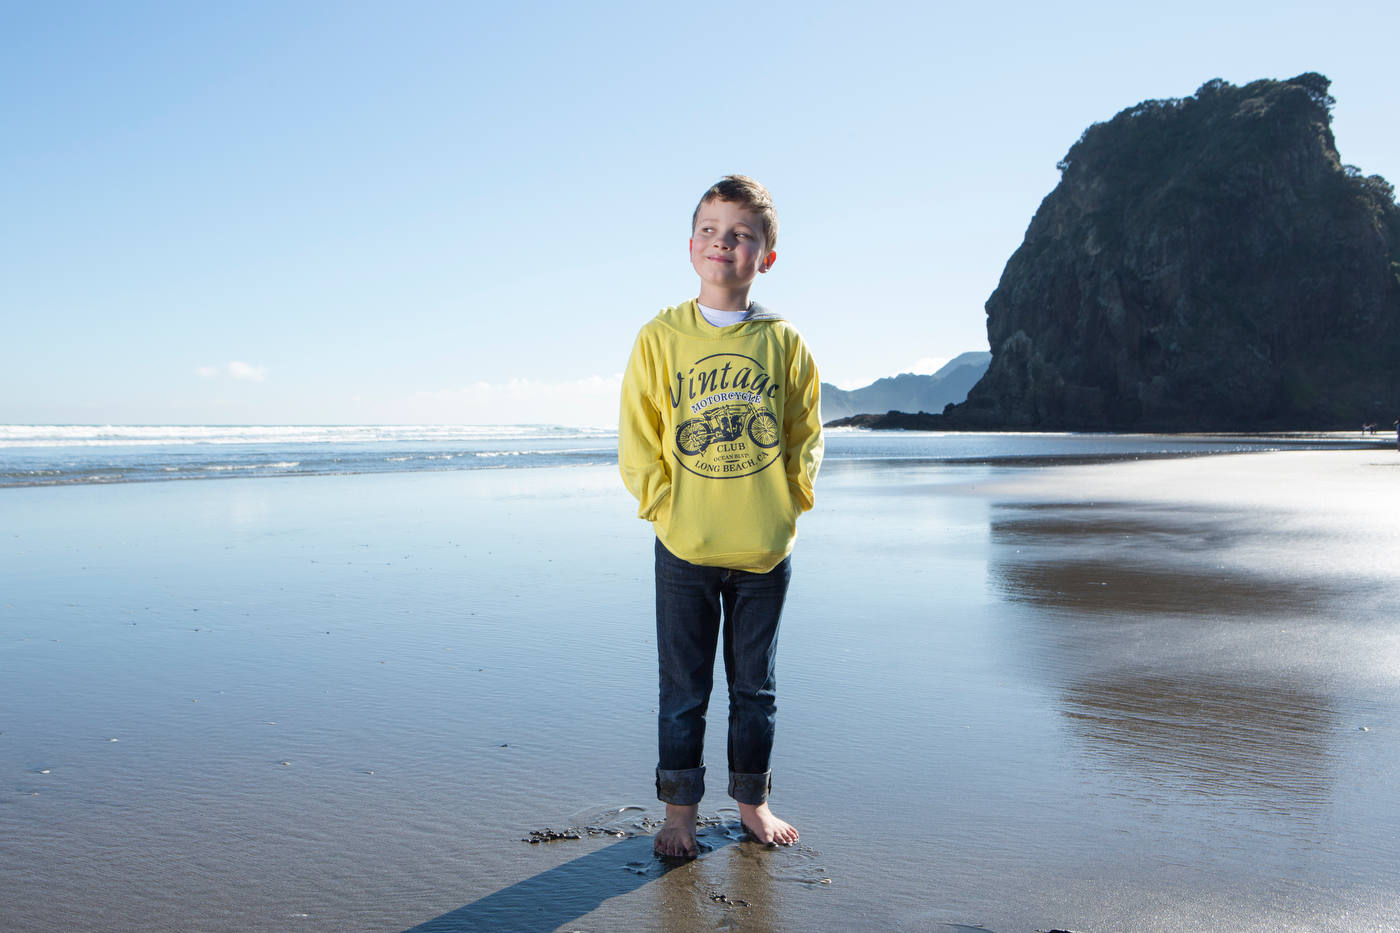 Louis, Cochlear implant recipient, in New Zealand, for Advanced Bionics.